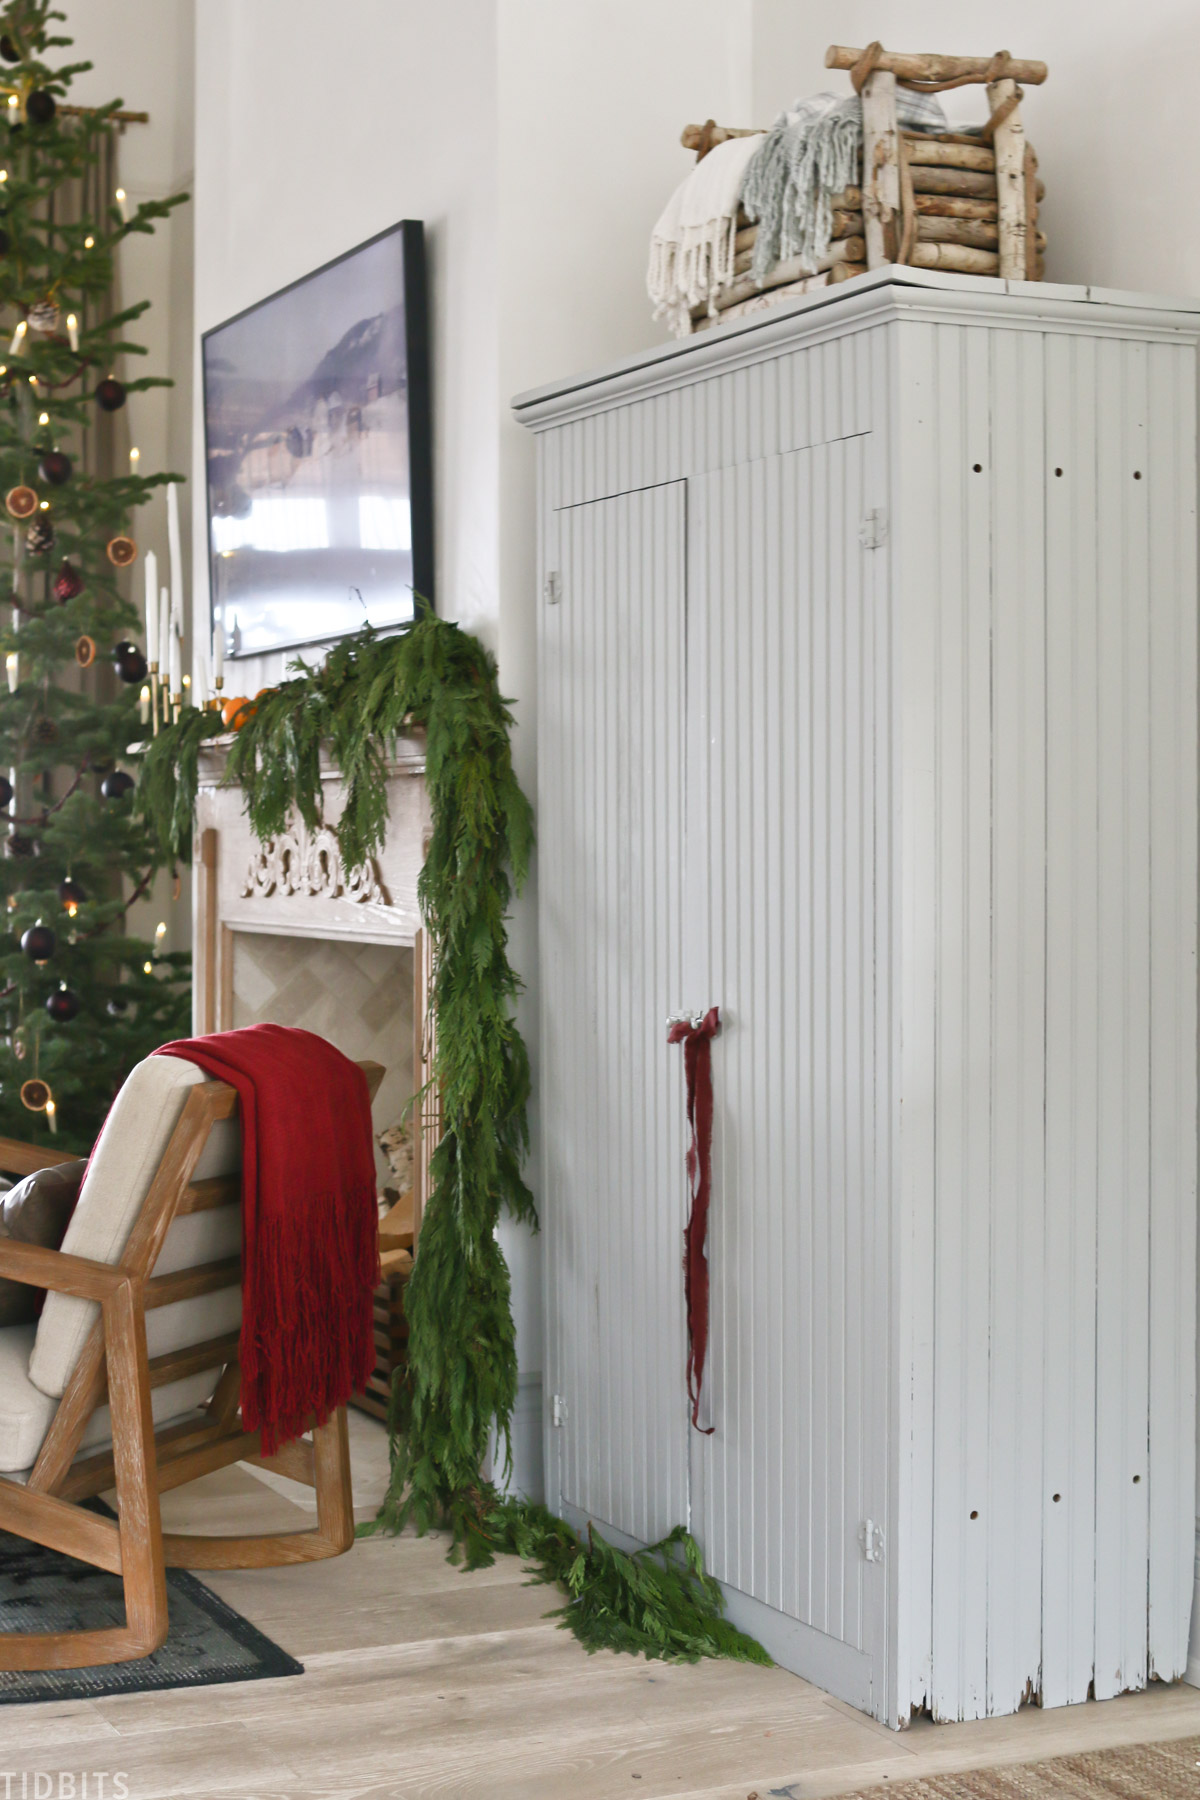 living room with ribbon tied to cabinet door handle and chair with red blanket with Christmas tree in background